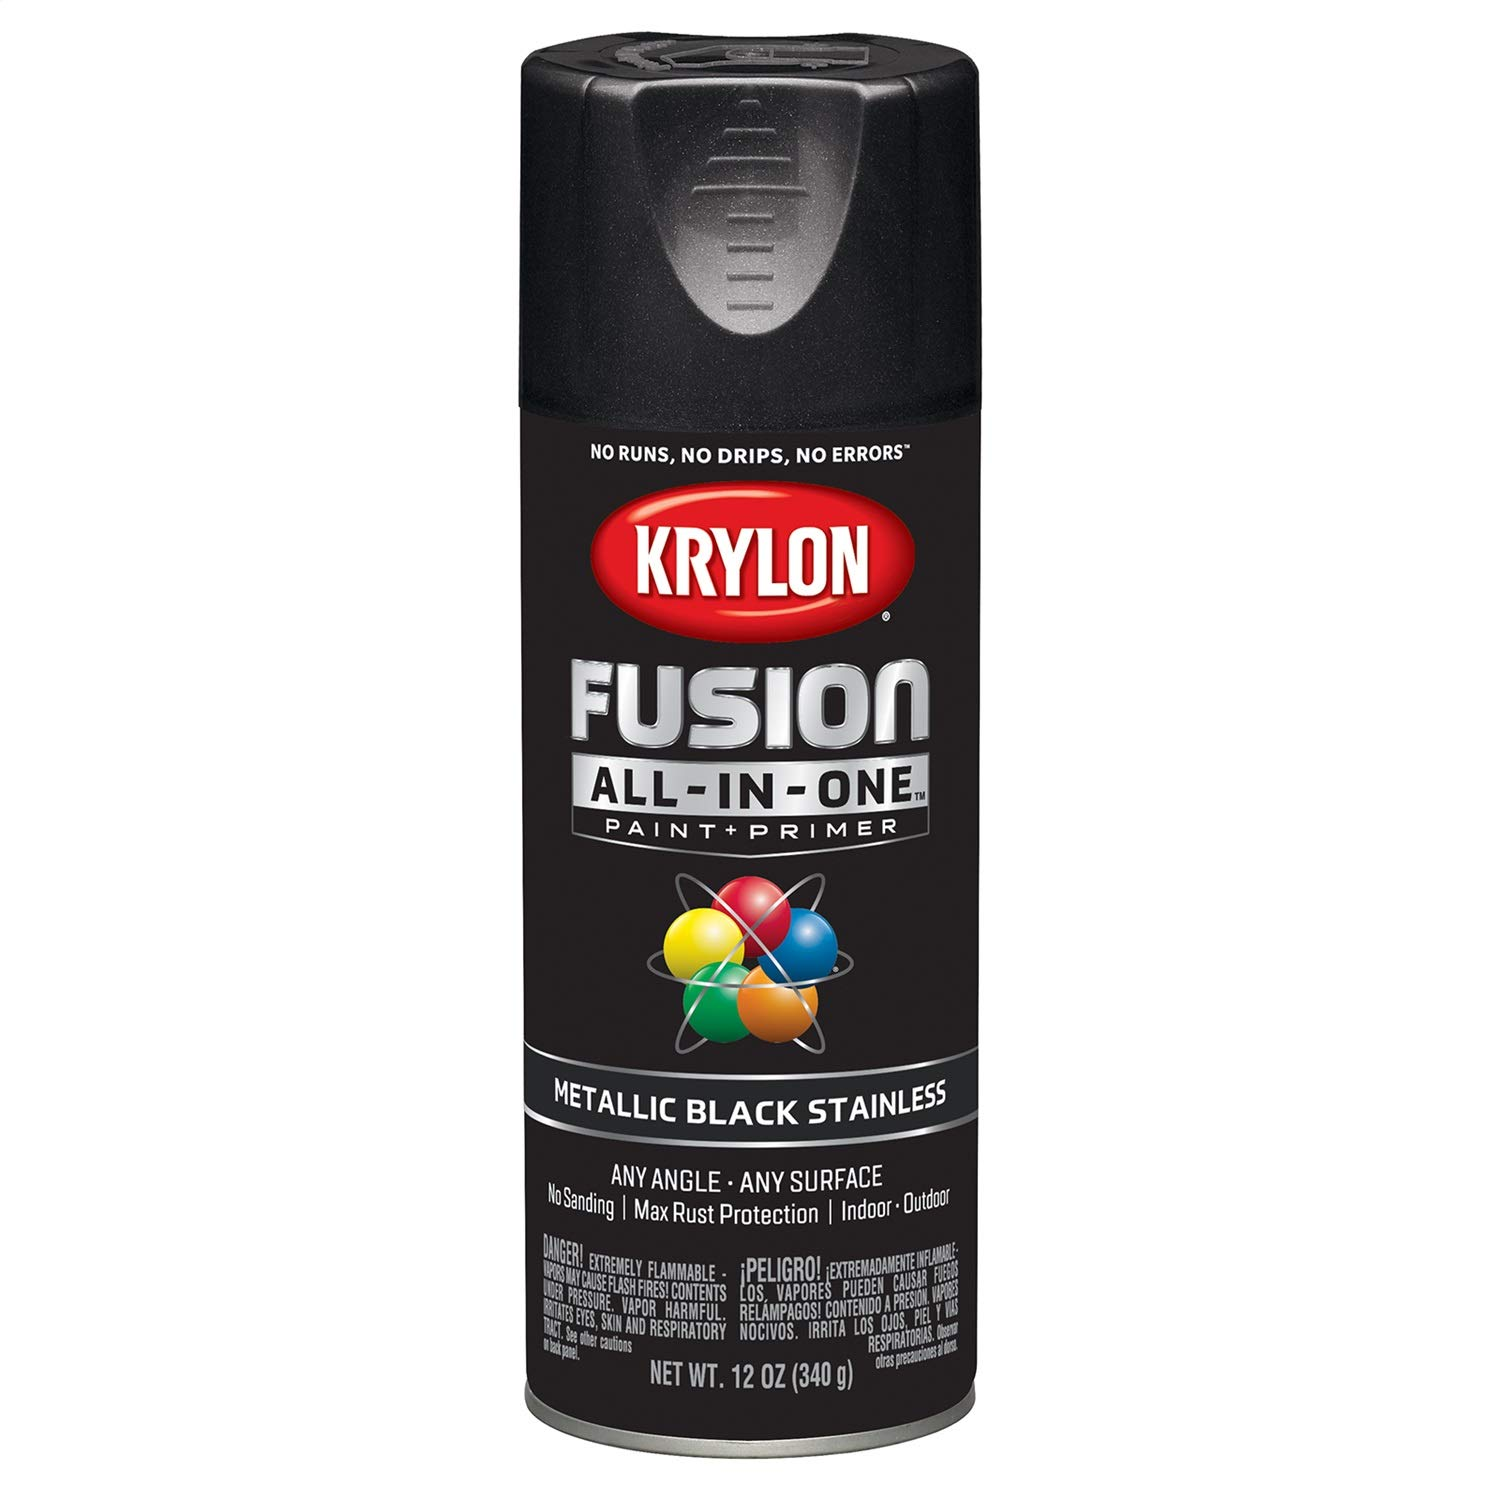 Krylon K02790007 Fusion All-in-One Spray Paint, Black Stainless